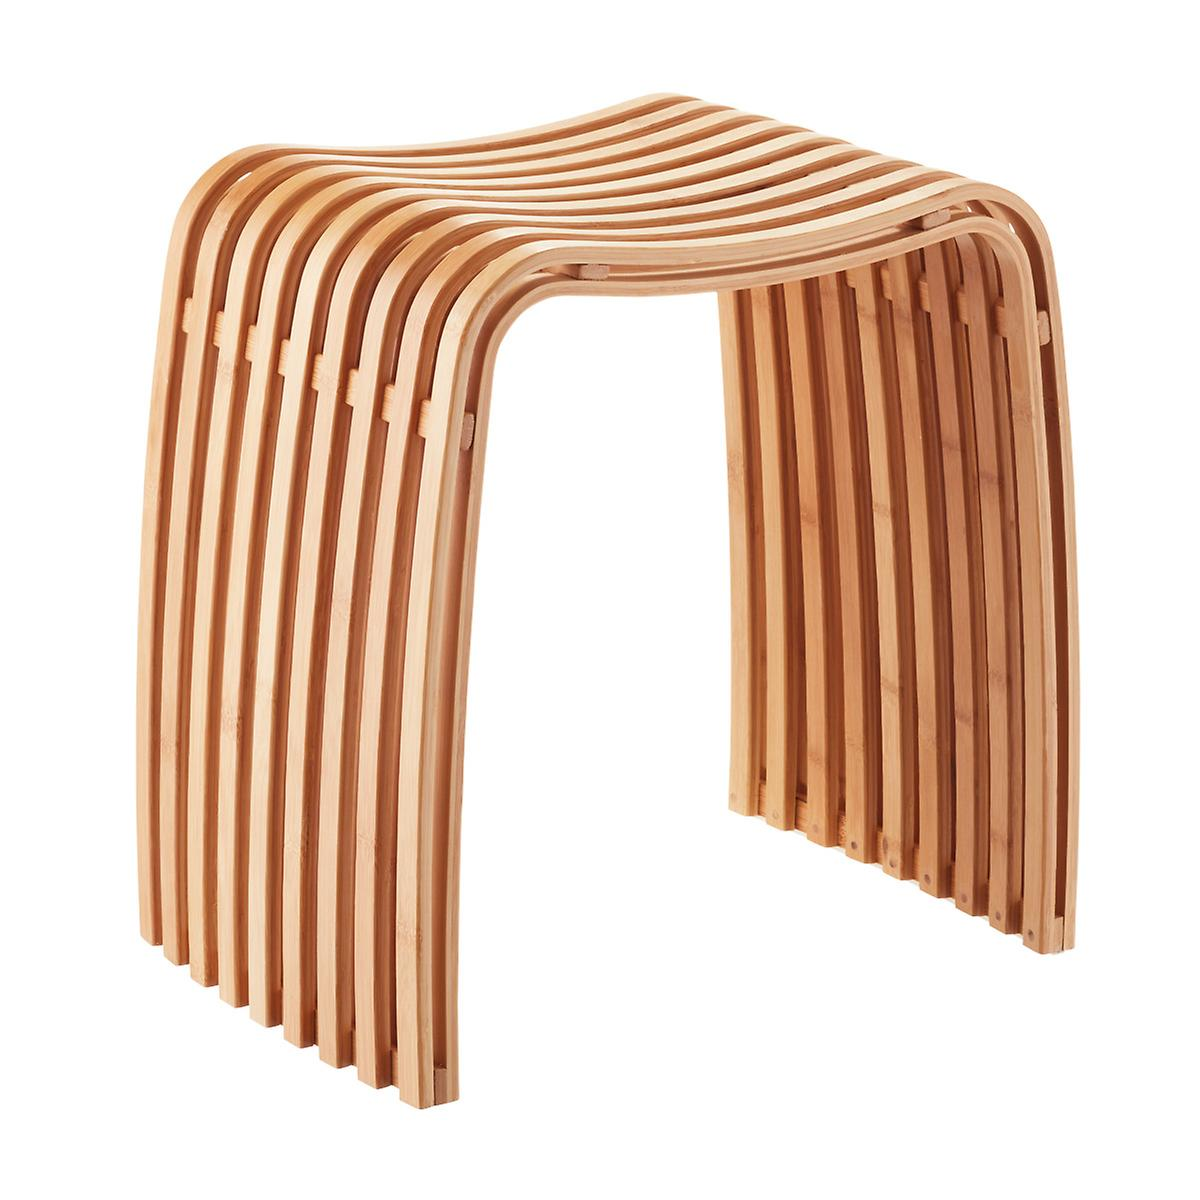 Bamboo Bedroom Stool